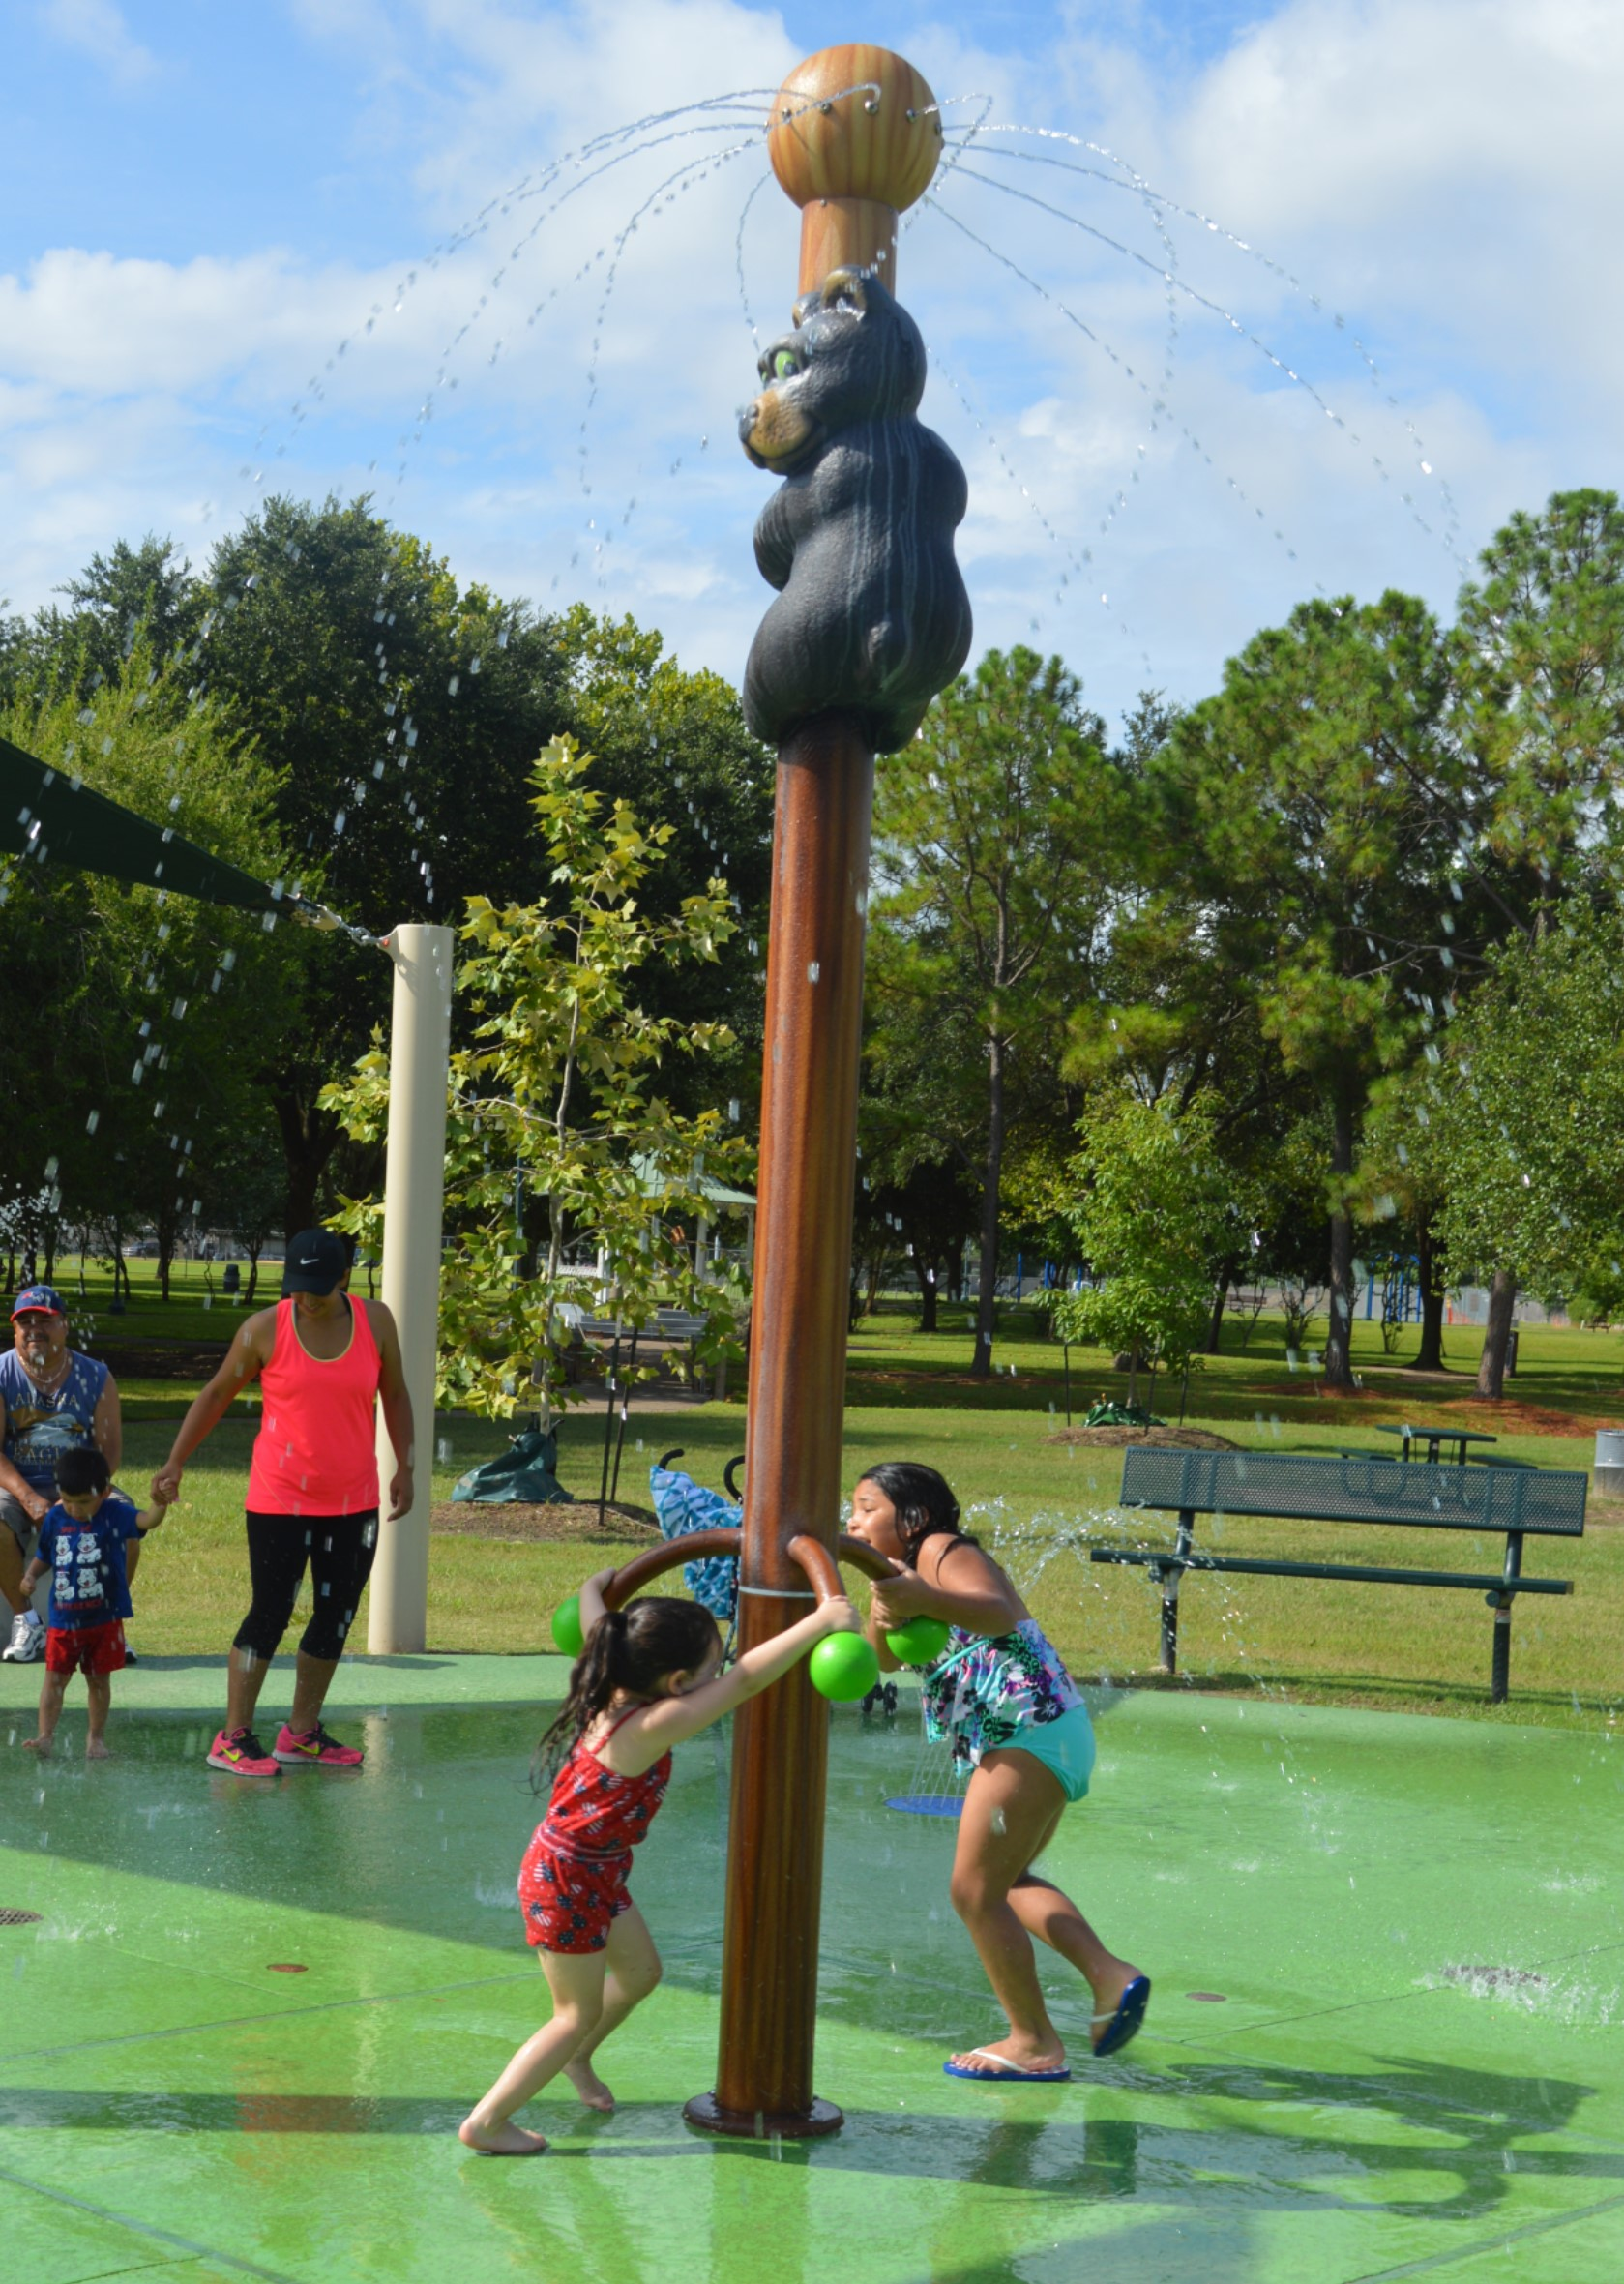 Kids playing outside at Splash Pad with adult in the background